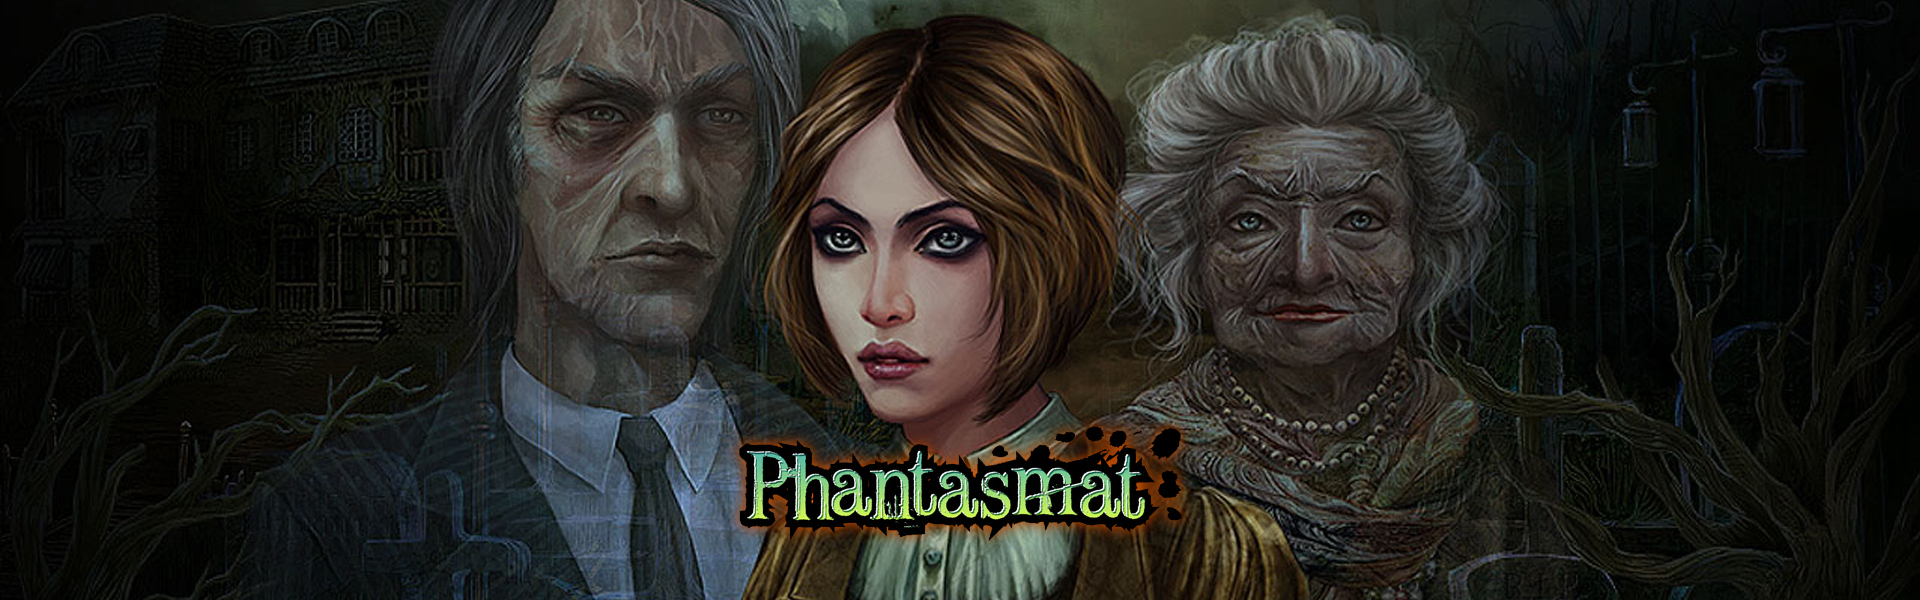 http://robwestwood.com/wp-content/uploads/2013/01/phantasmat.jpg